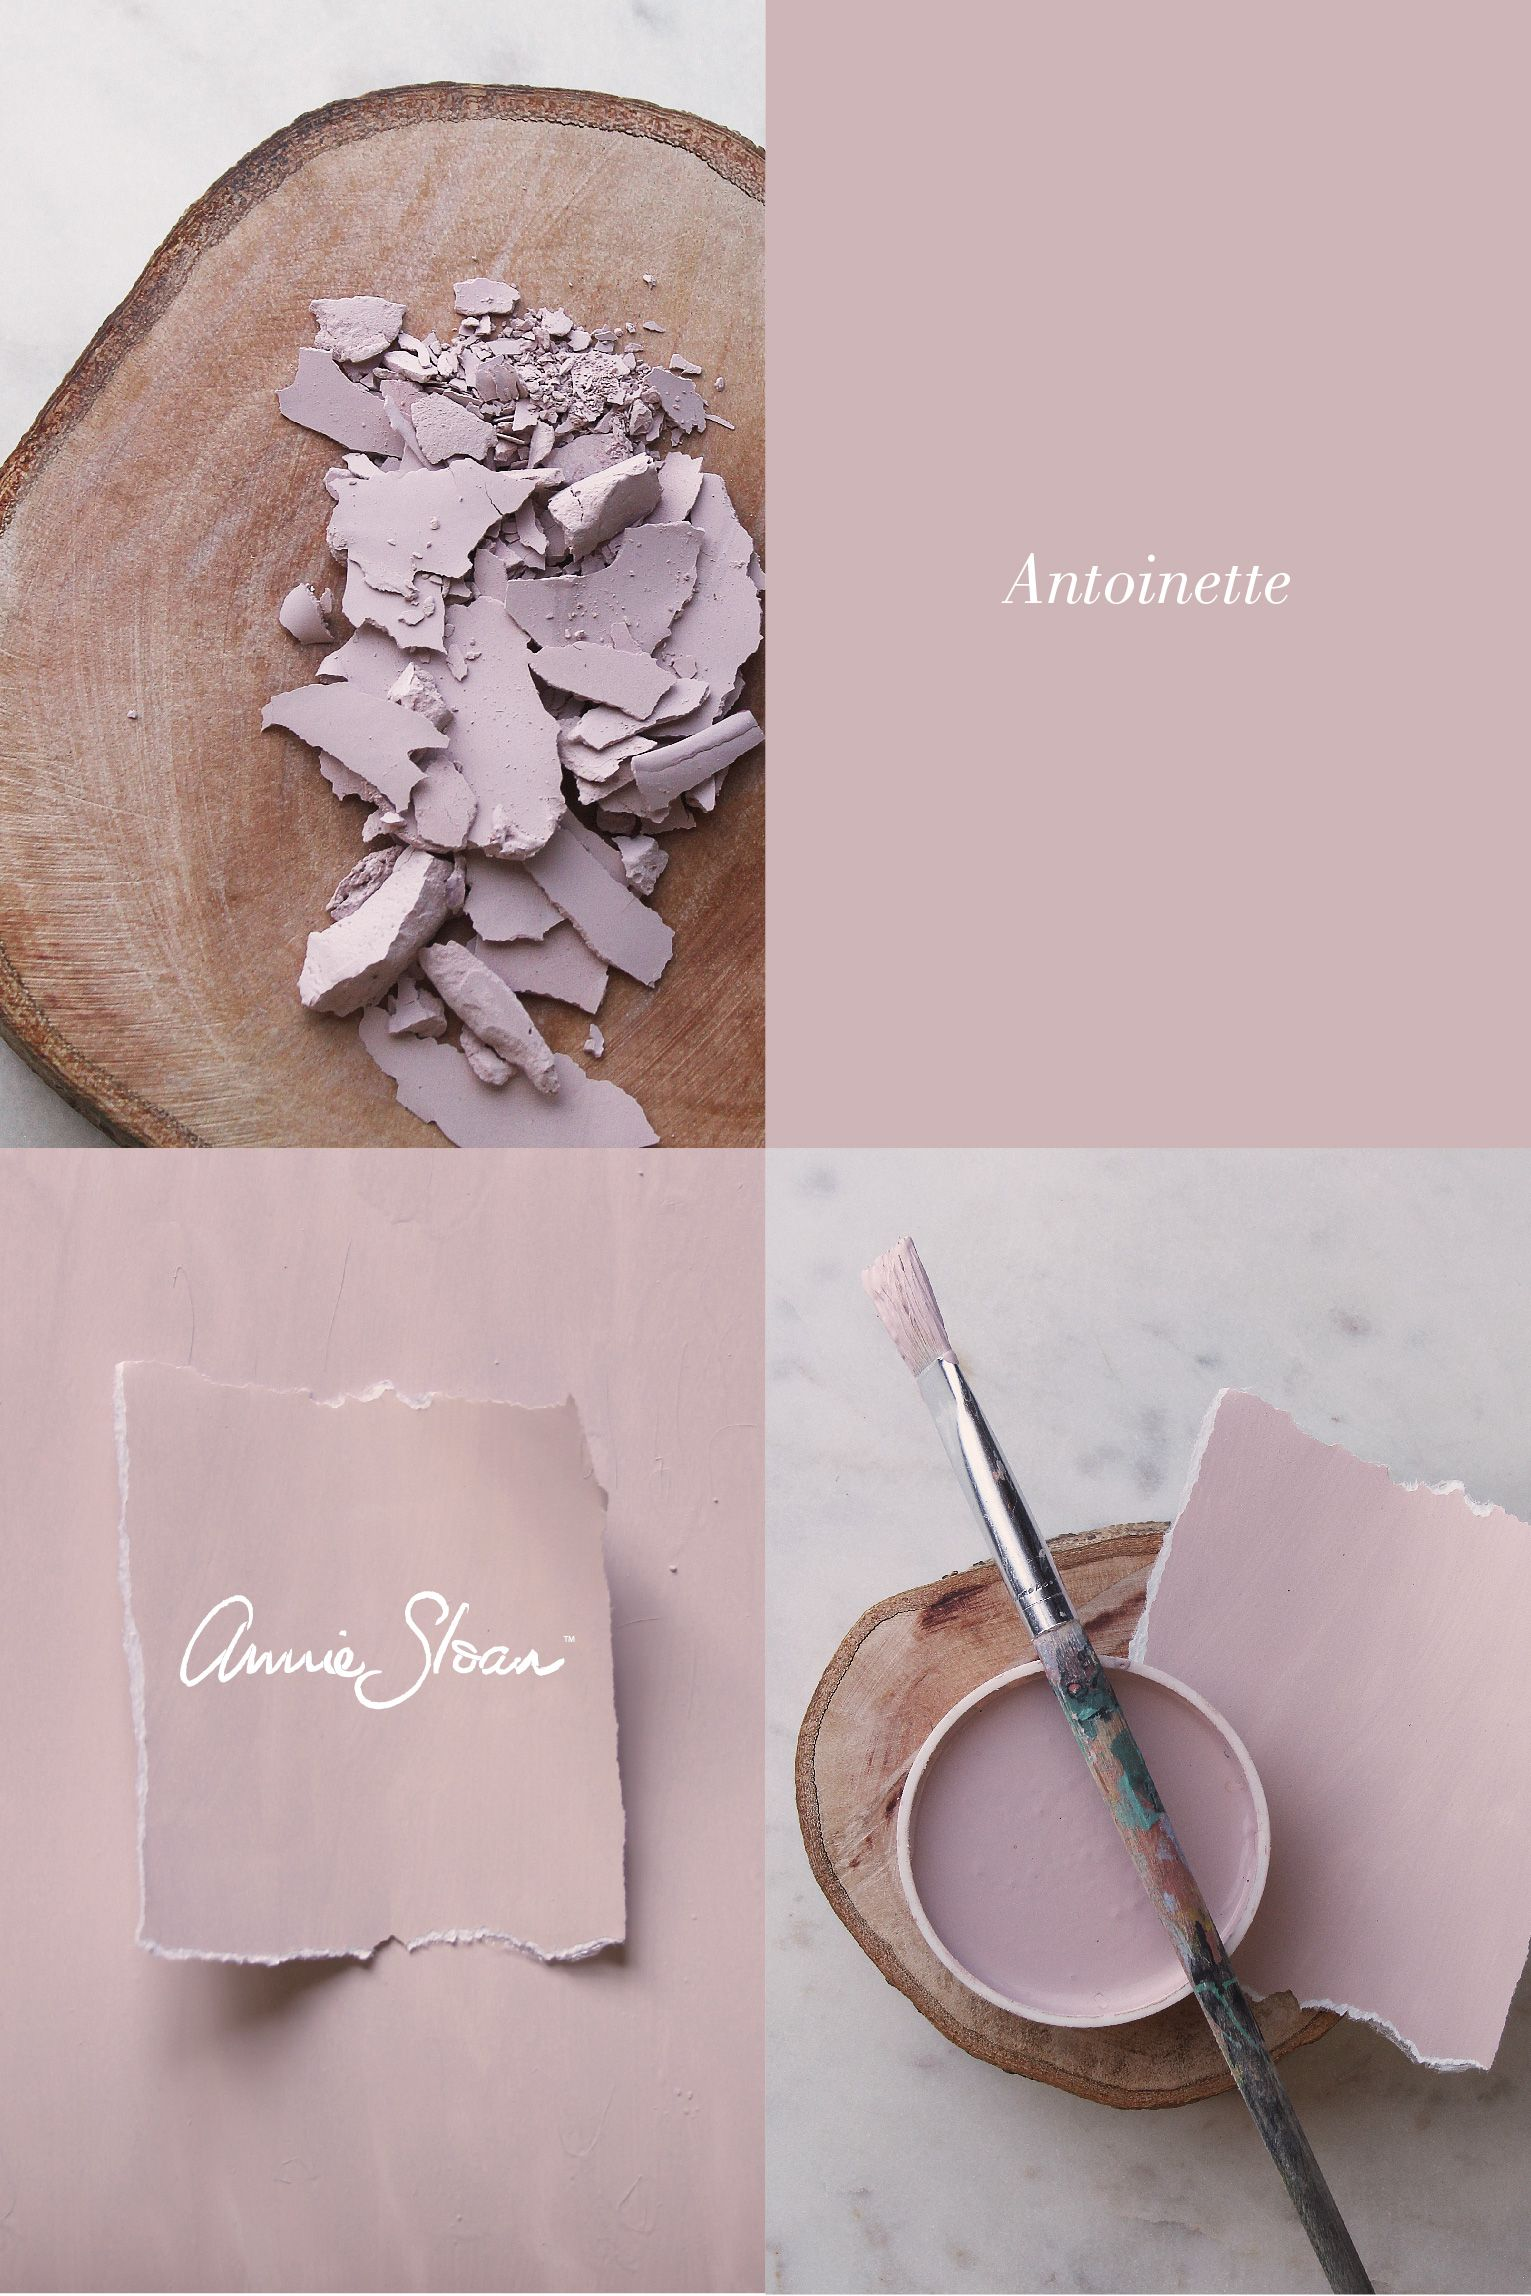 Pittura Per Piastrelle Colori the very pretty paint colour - antoinette by annie sloan